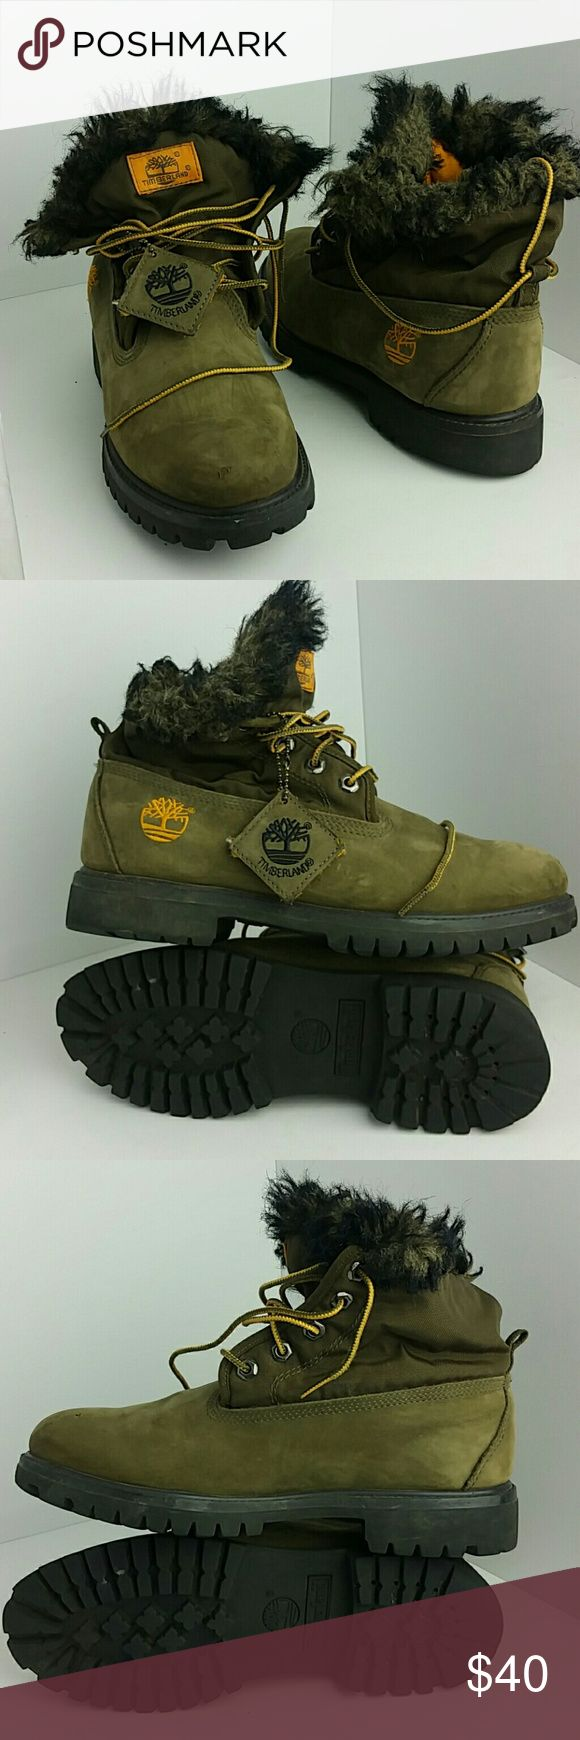 TIMBERLAND MEN'S BOOT IN GOOD CONDITION   SKE # FM timberland  Shoes Boots